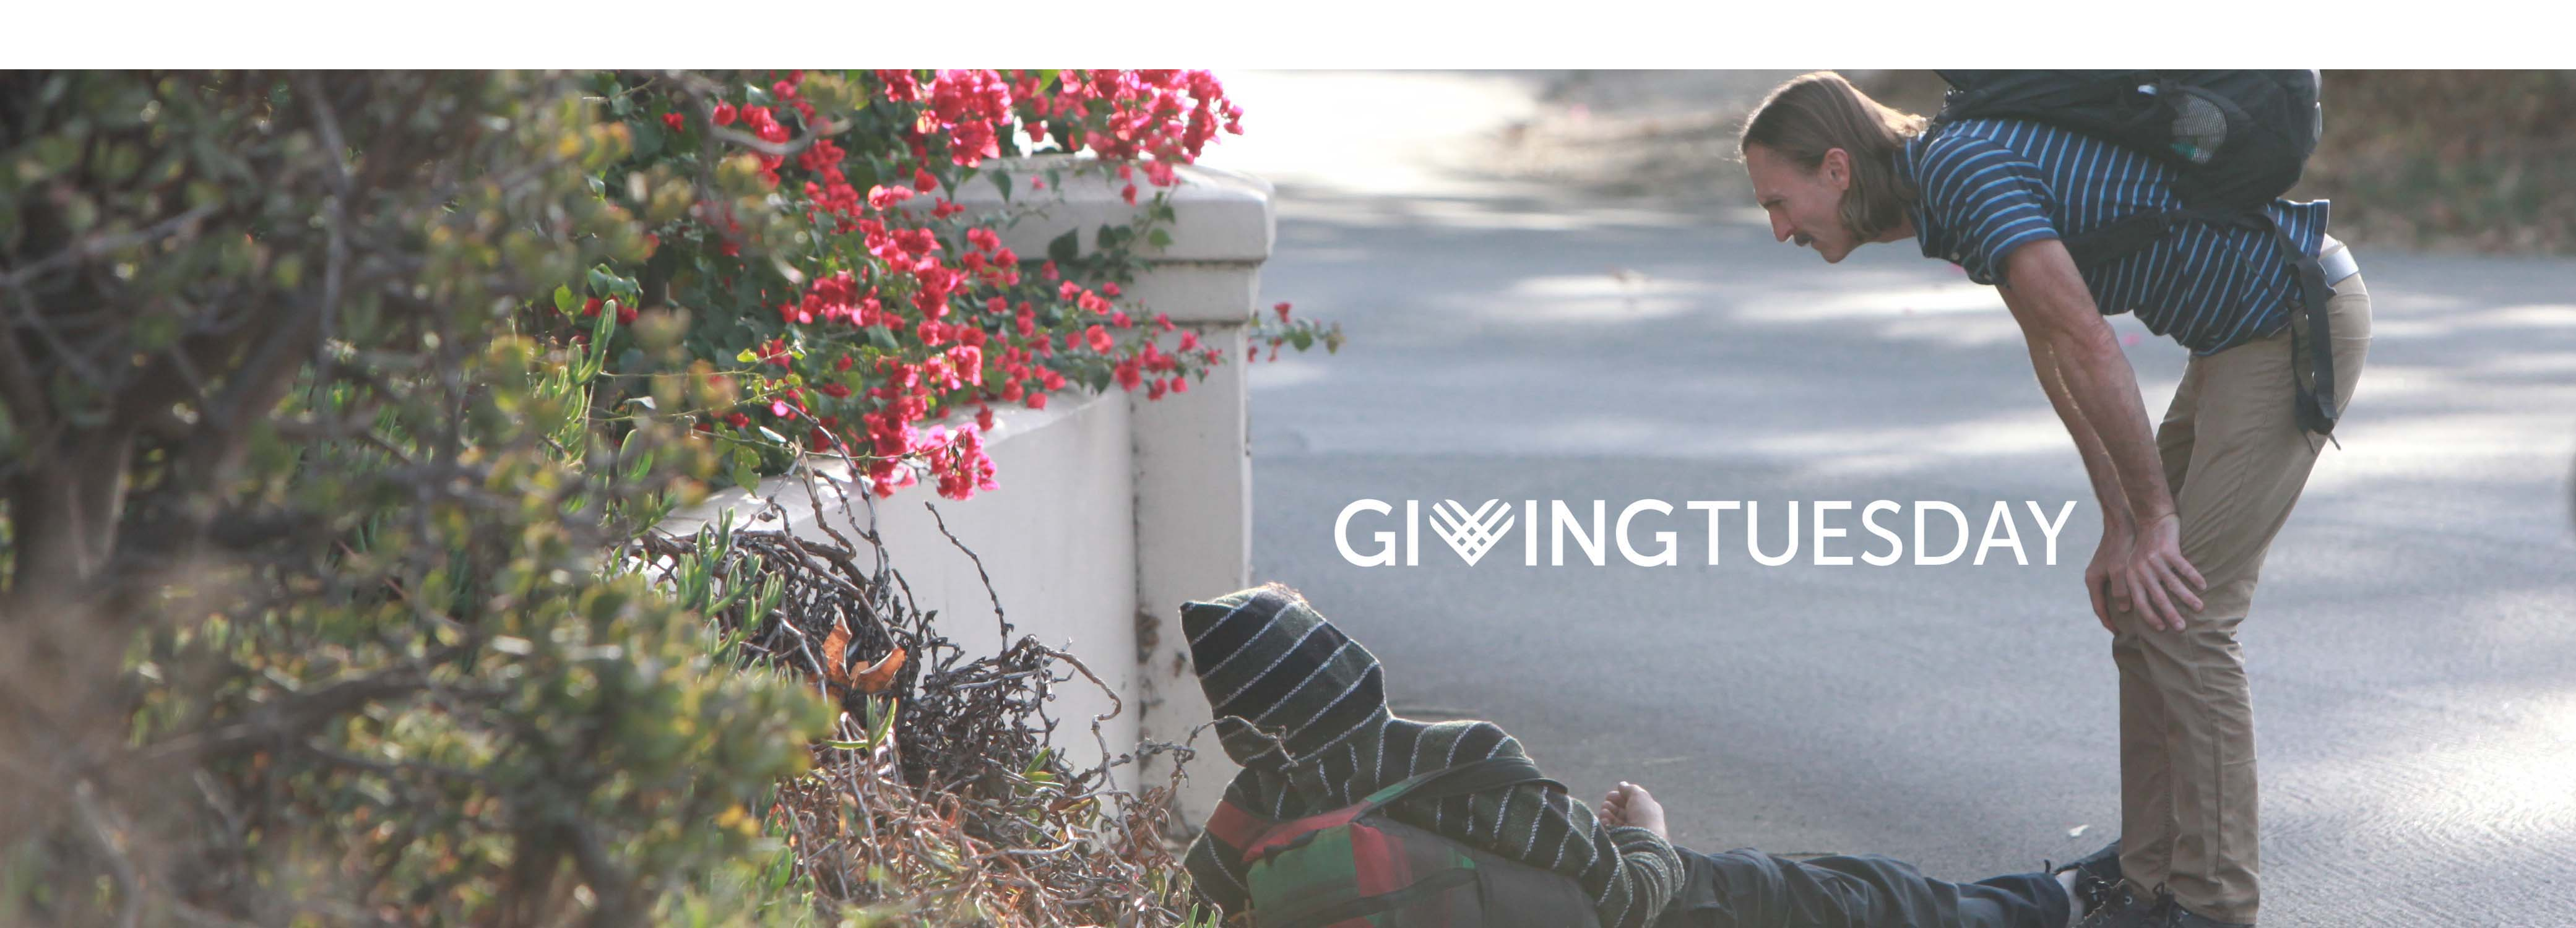 Giving tuesday coley header